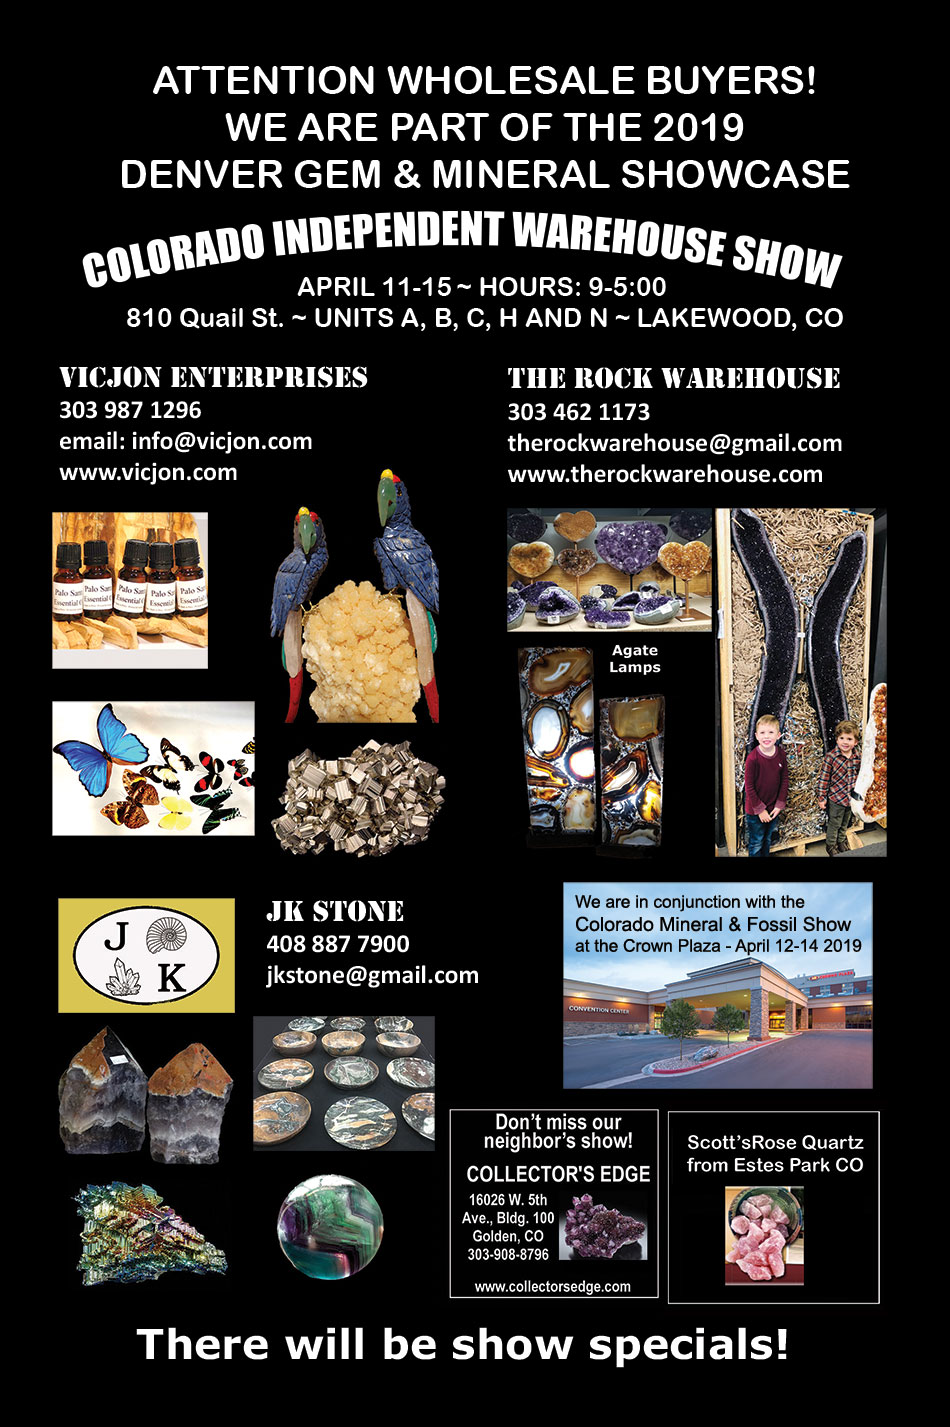 Colorado Independent Warehouse Show